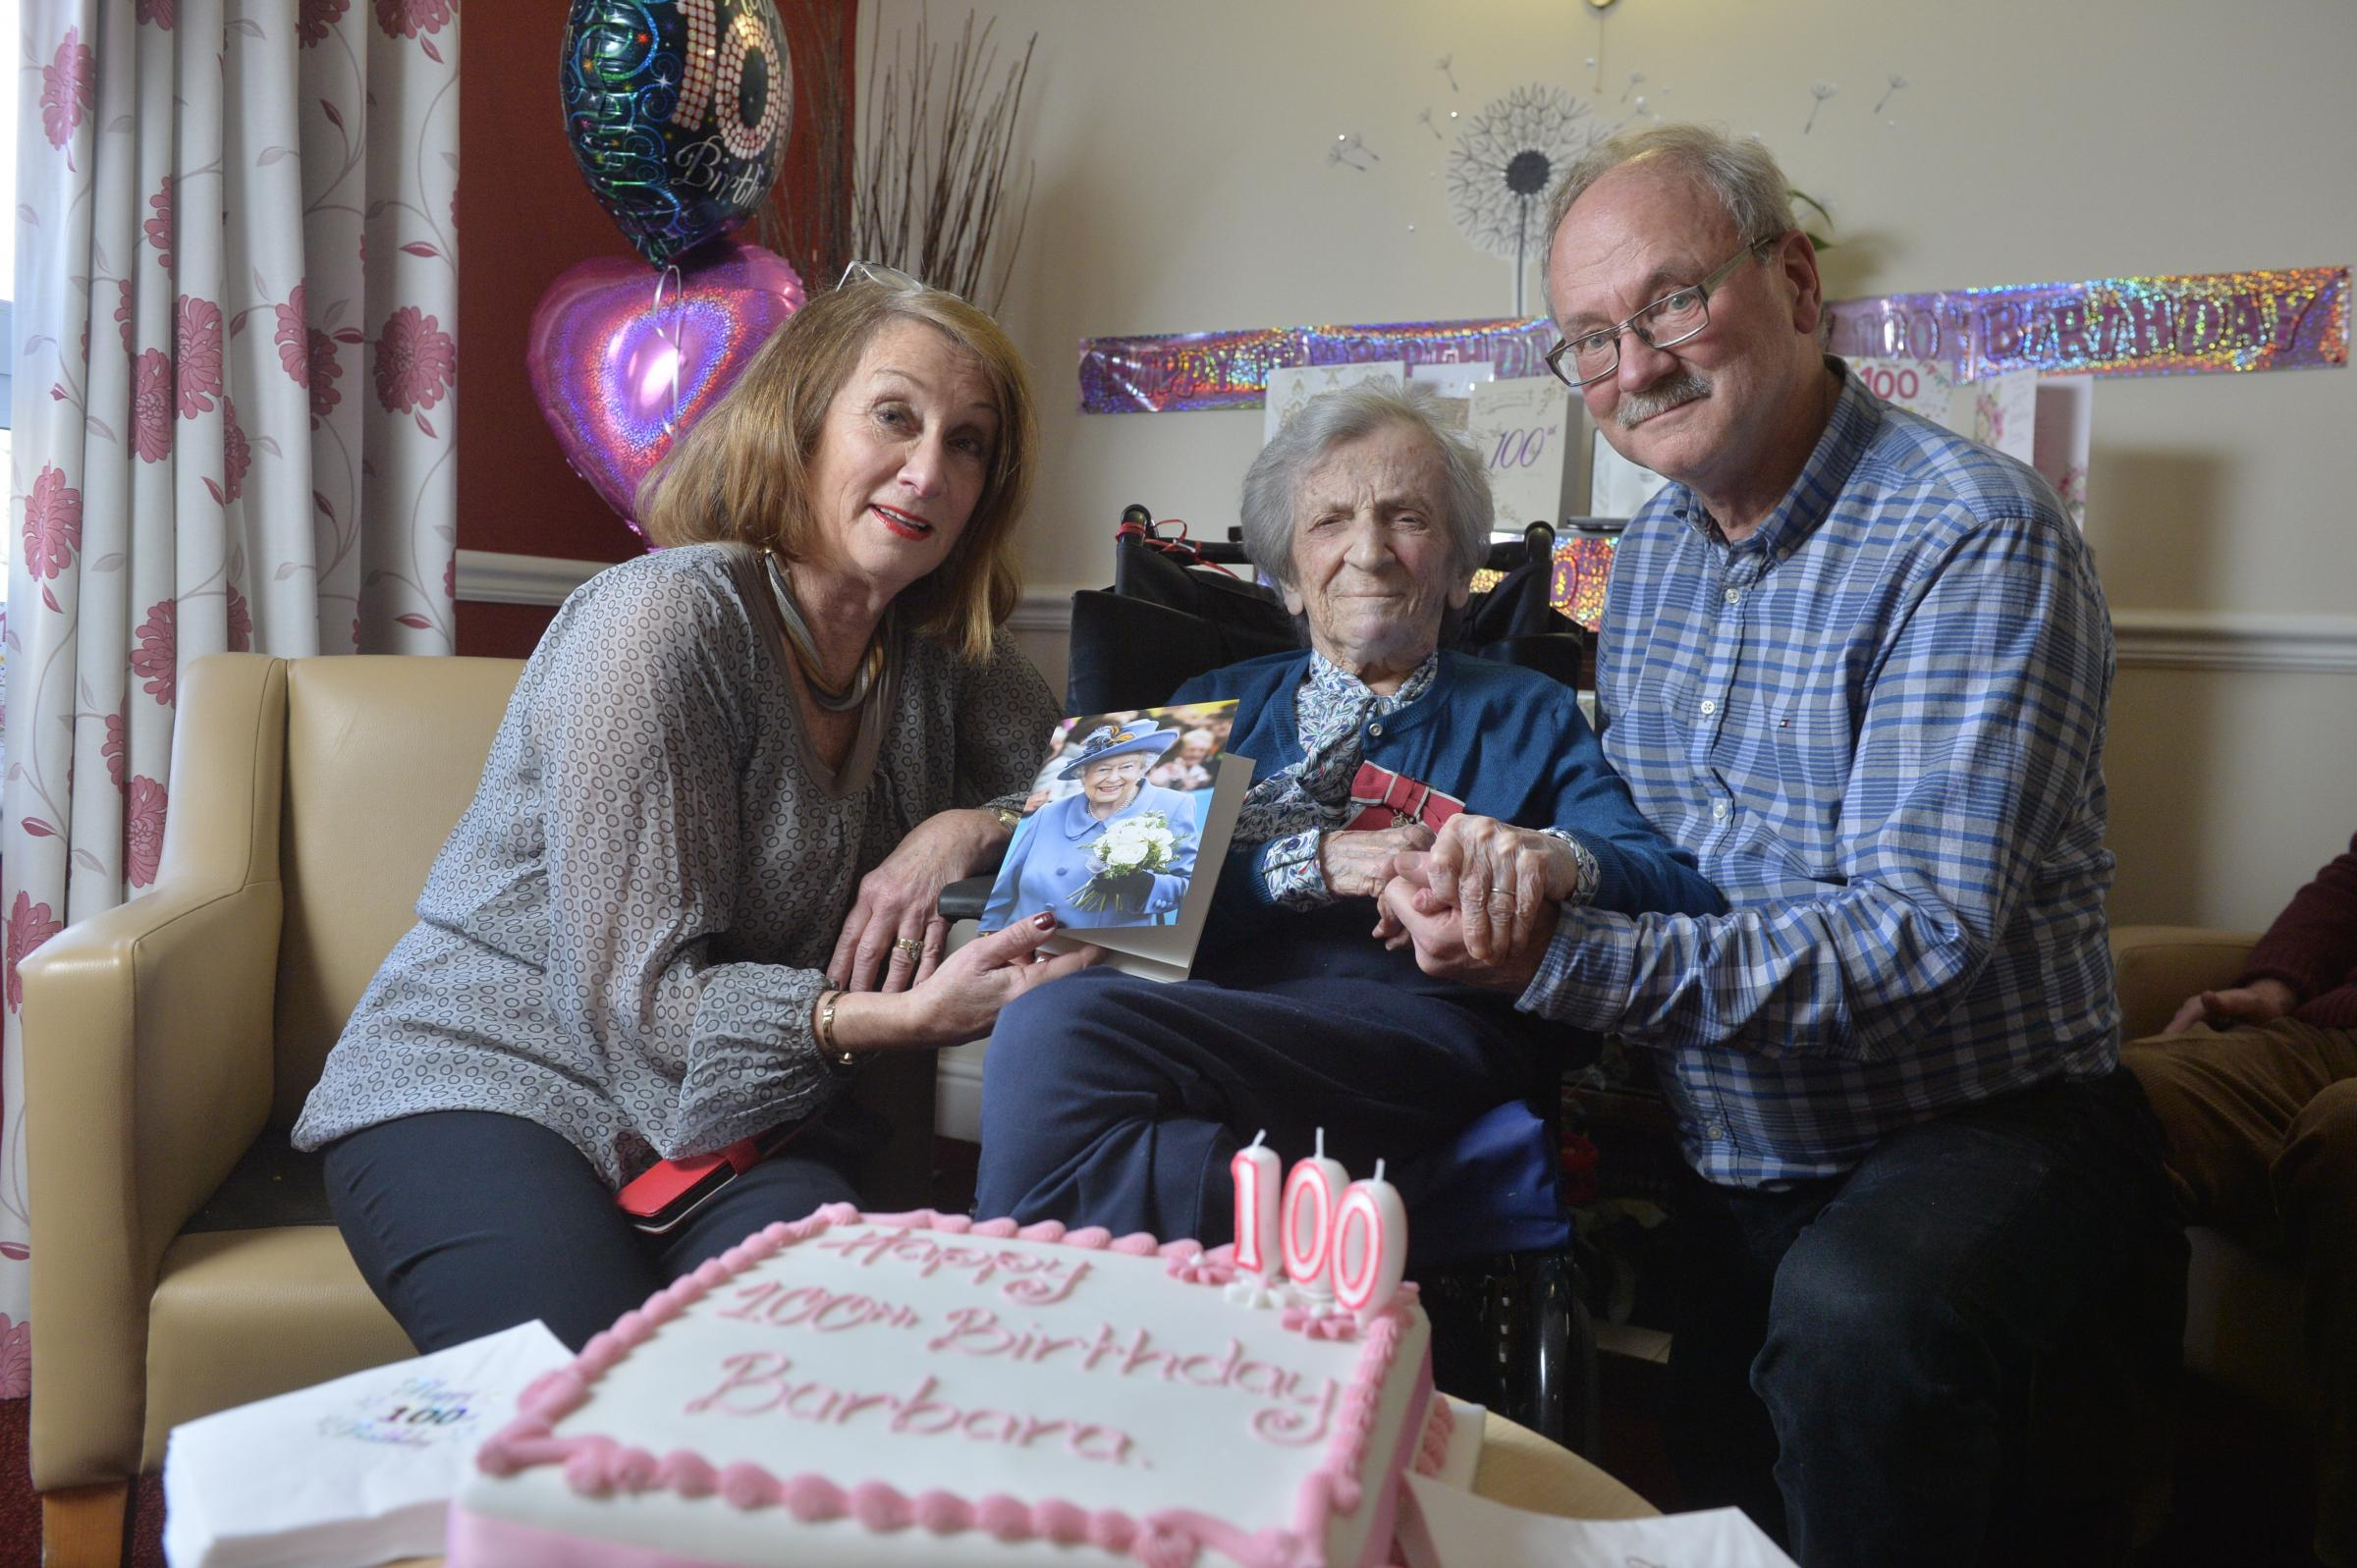 Barbara reveals secret of long life as she turns 100